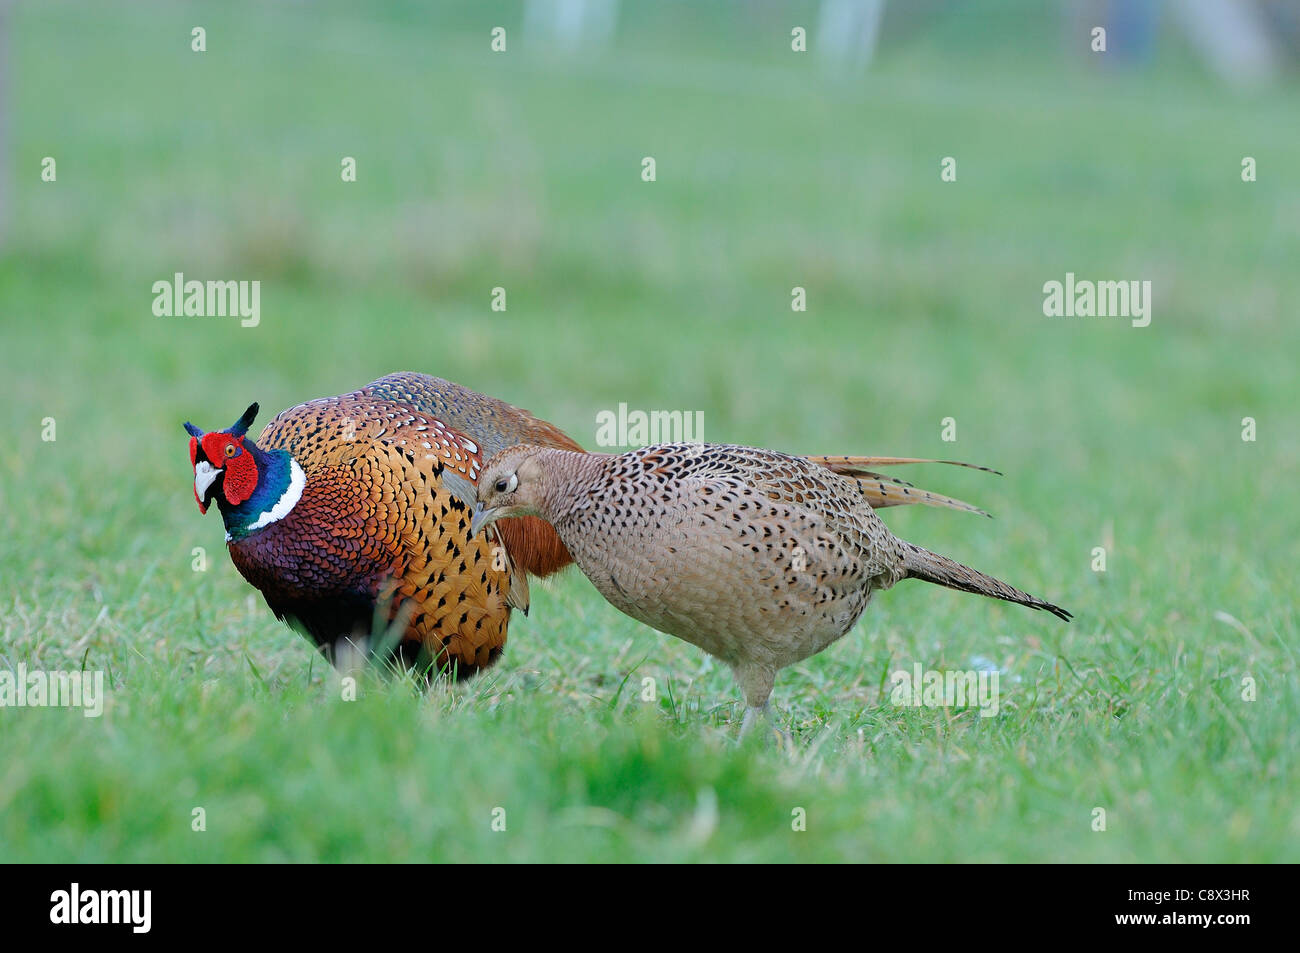 Common Pheasant (Phasianus colchicus) male in courtship display to female, Oxfordshire, UK Stock Photo